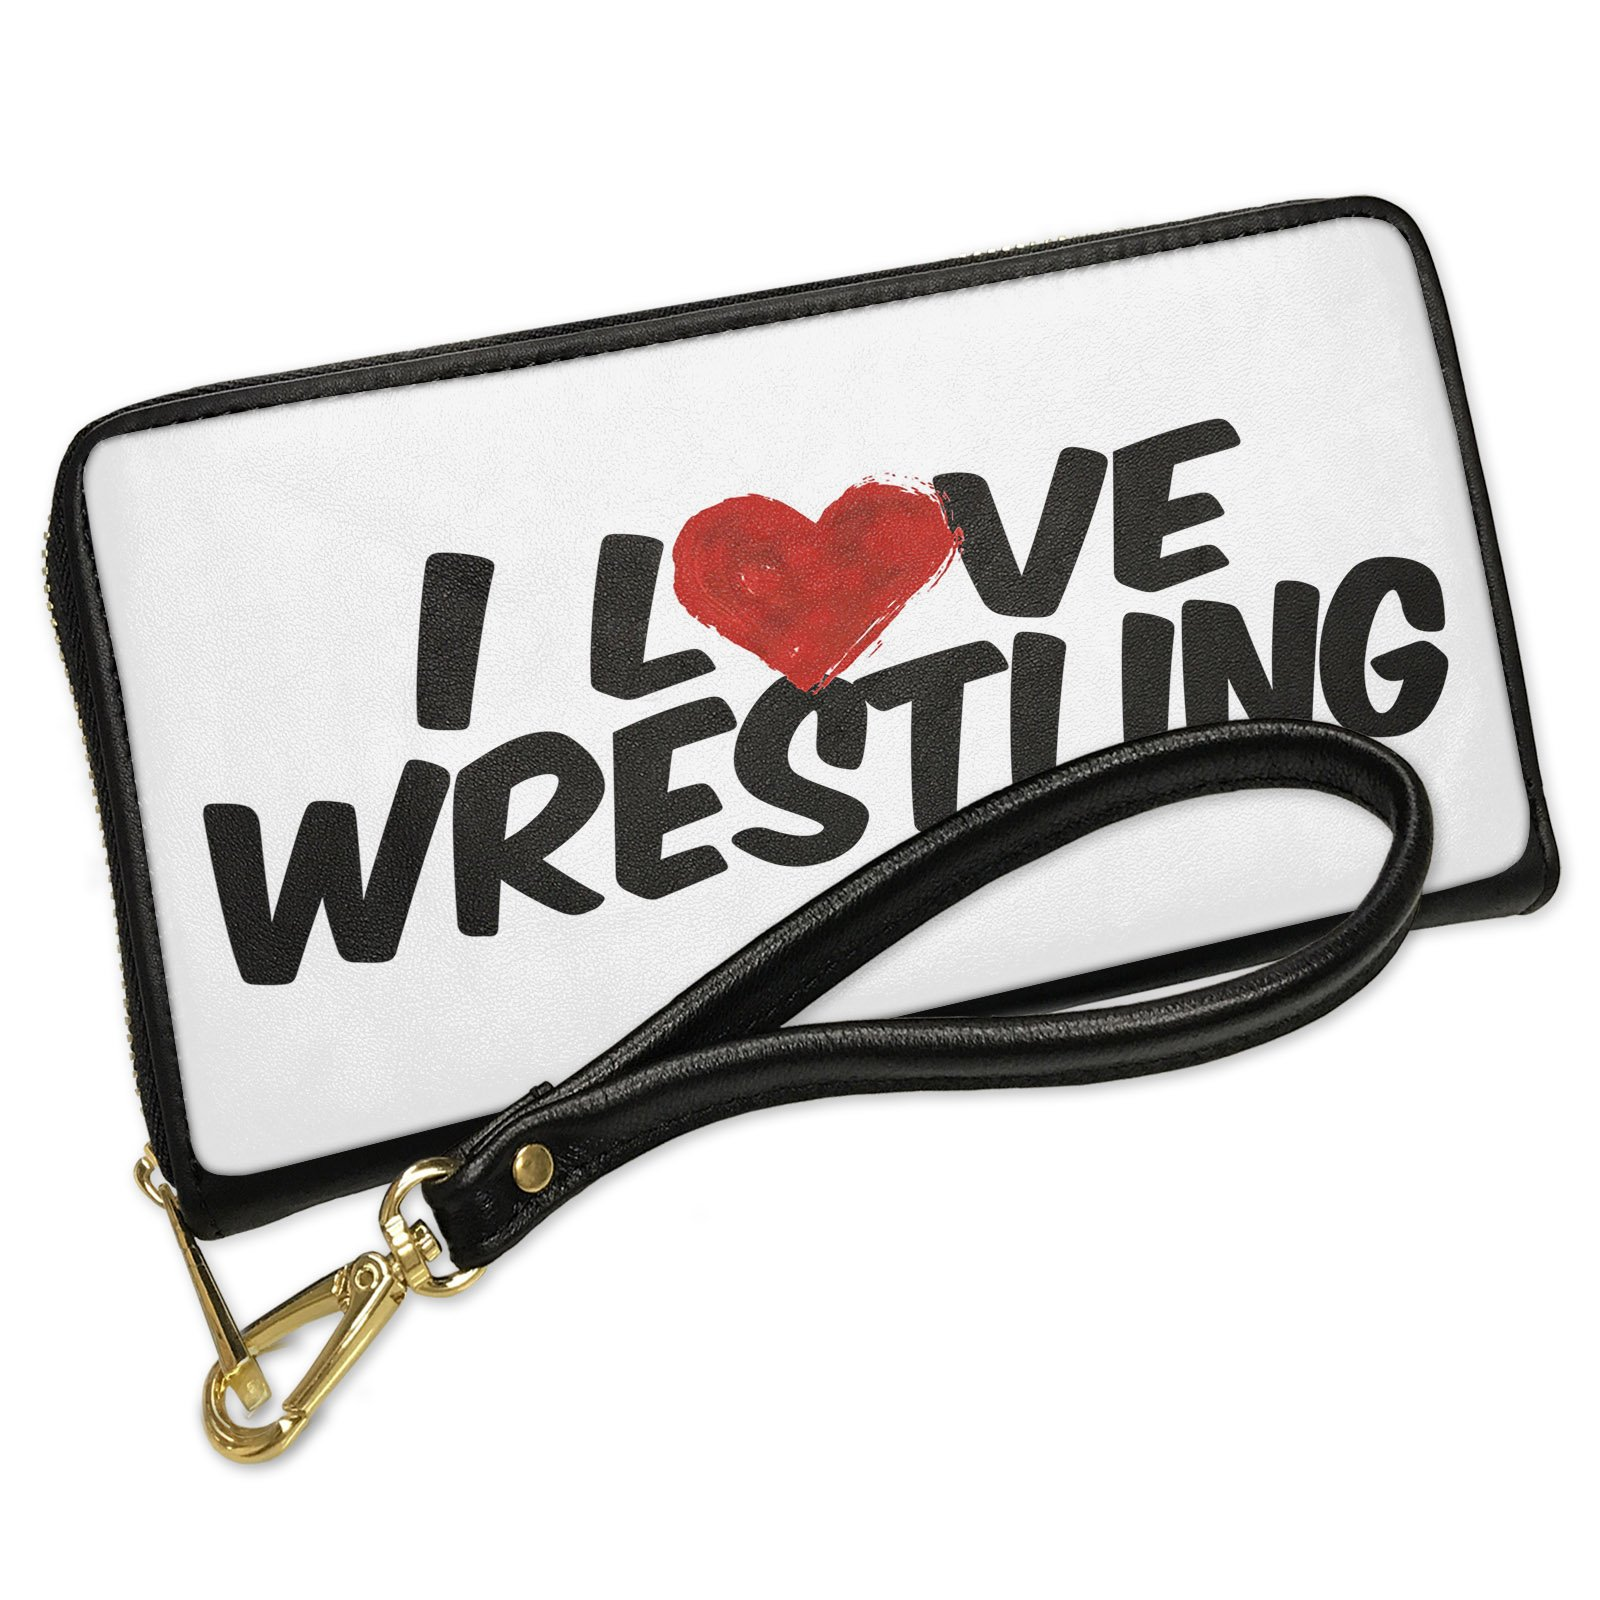 Wallet Clutch Wrestling with Removable Wristlet Strap Neonblond